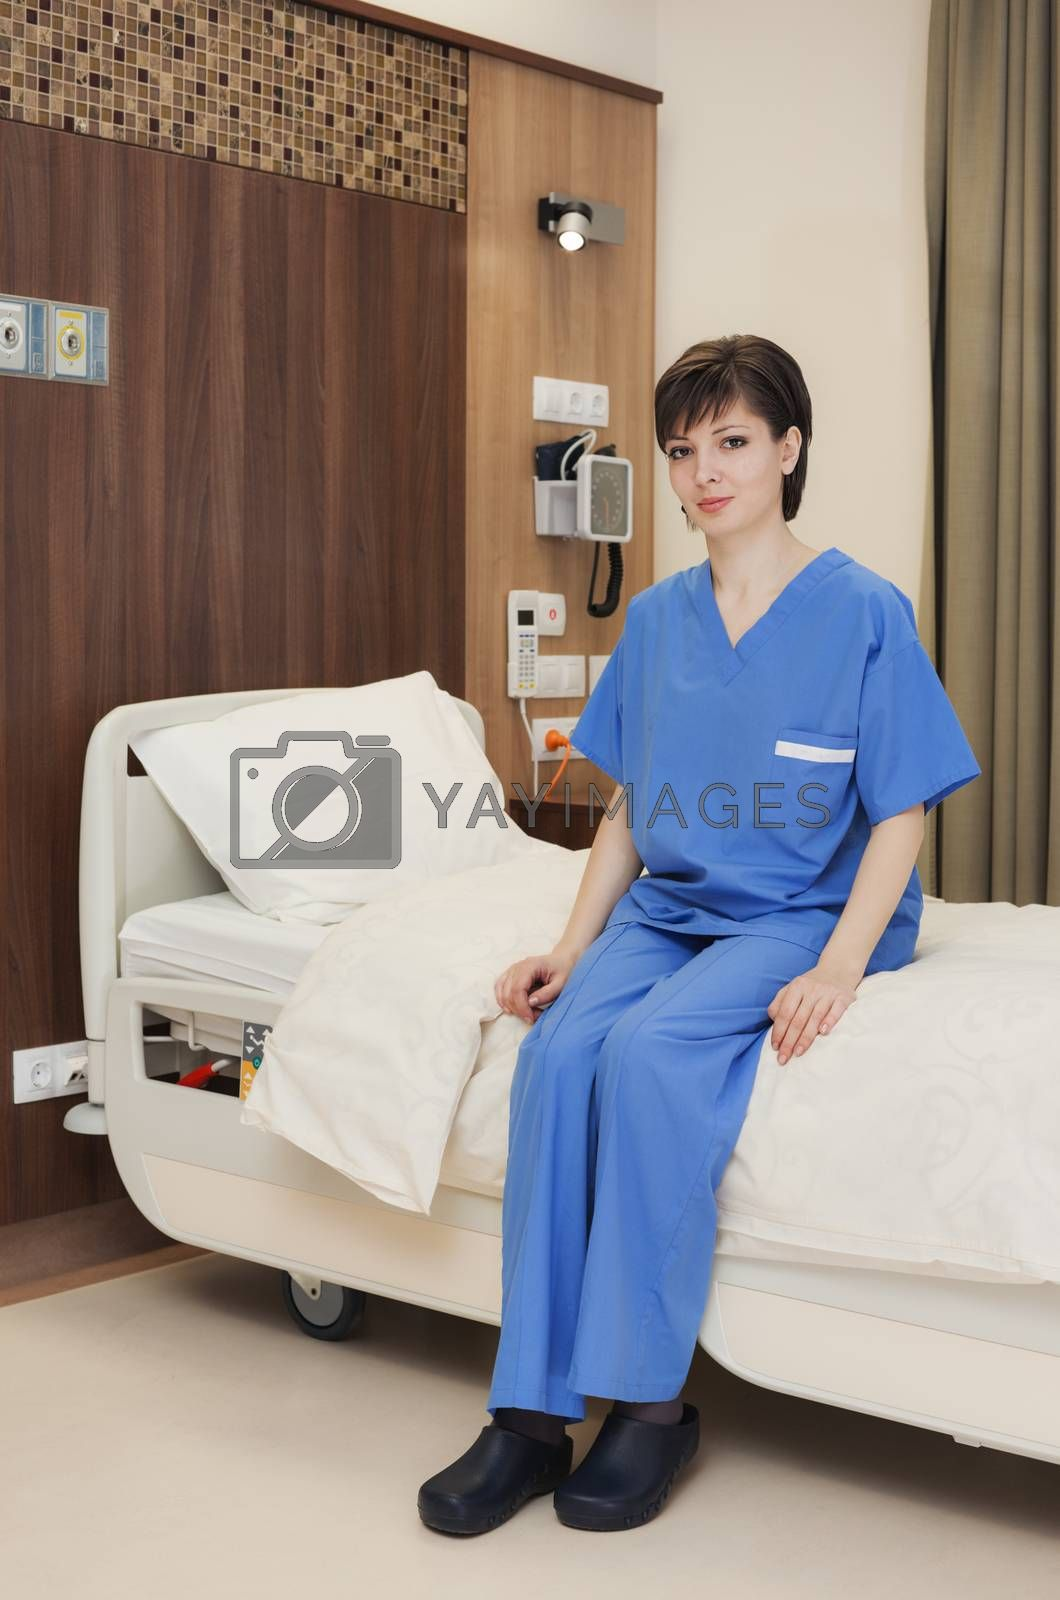 A young female patient sitting on medical bed in modern hospital room.